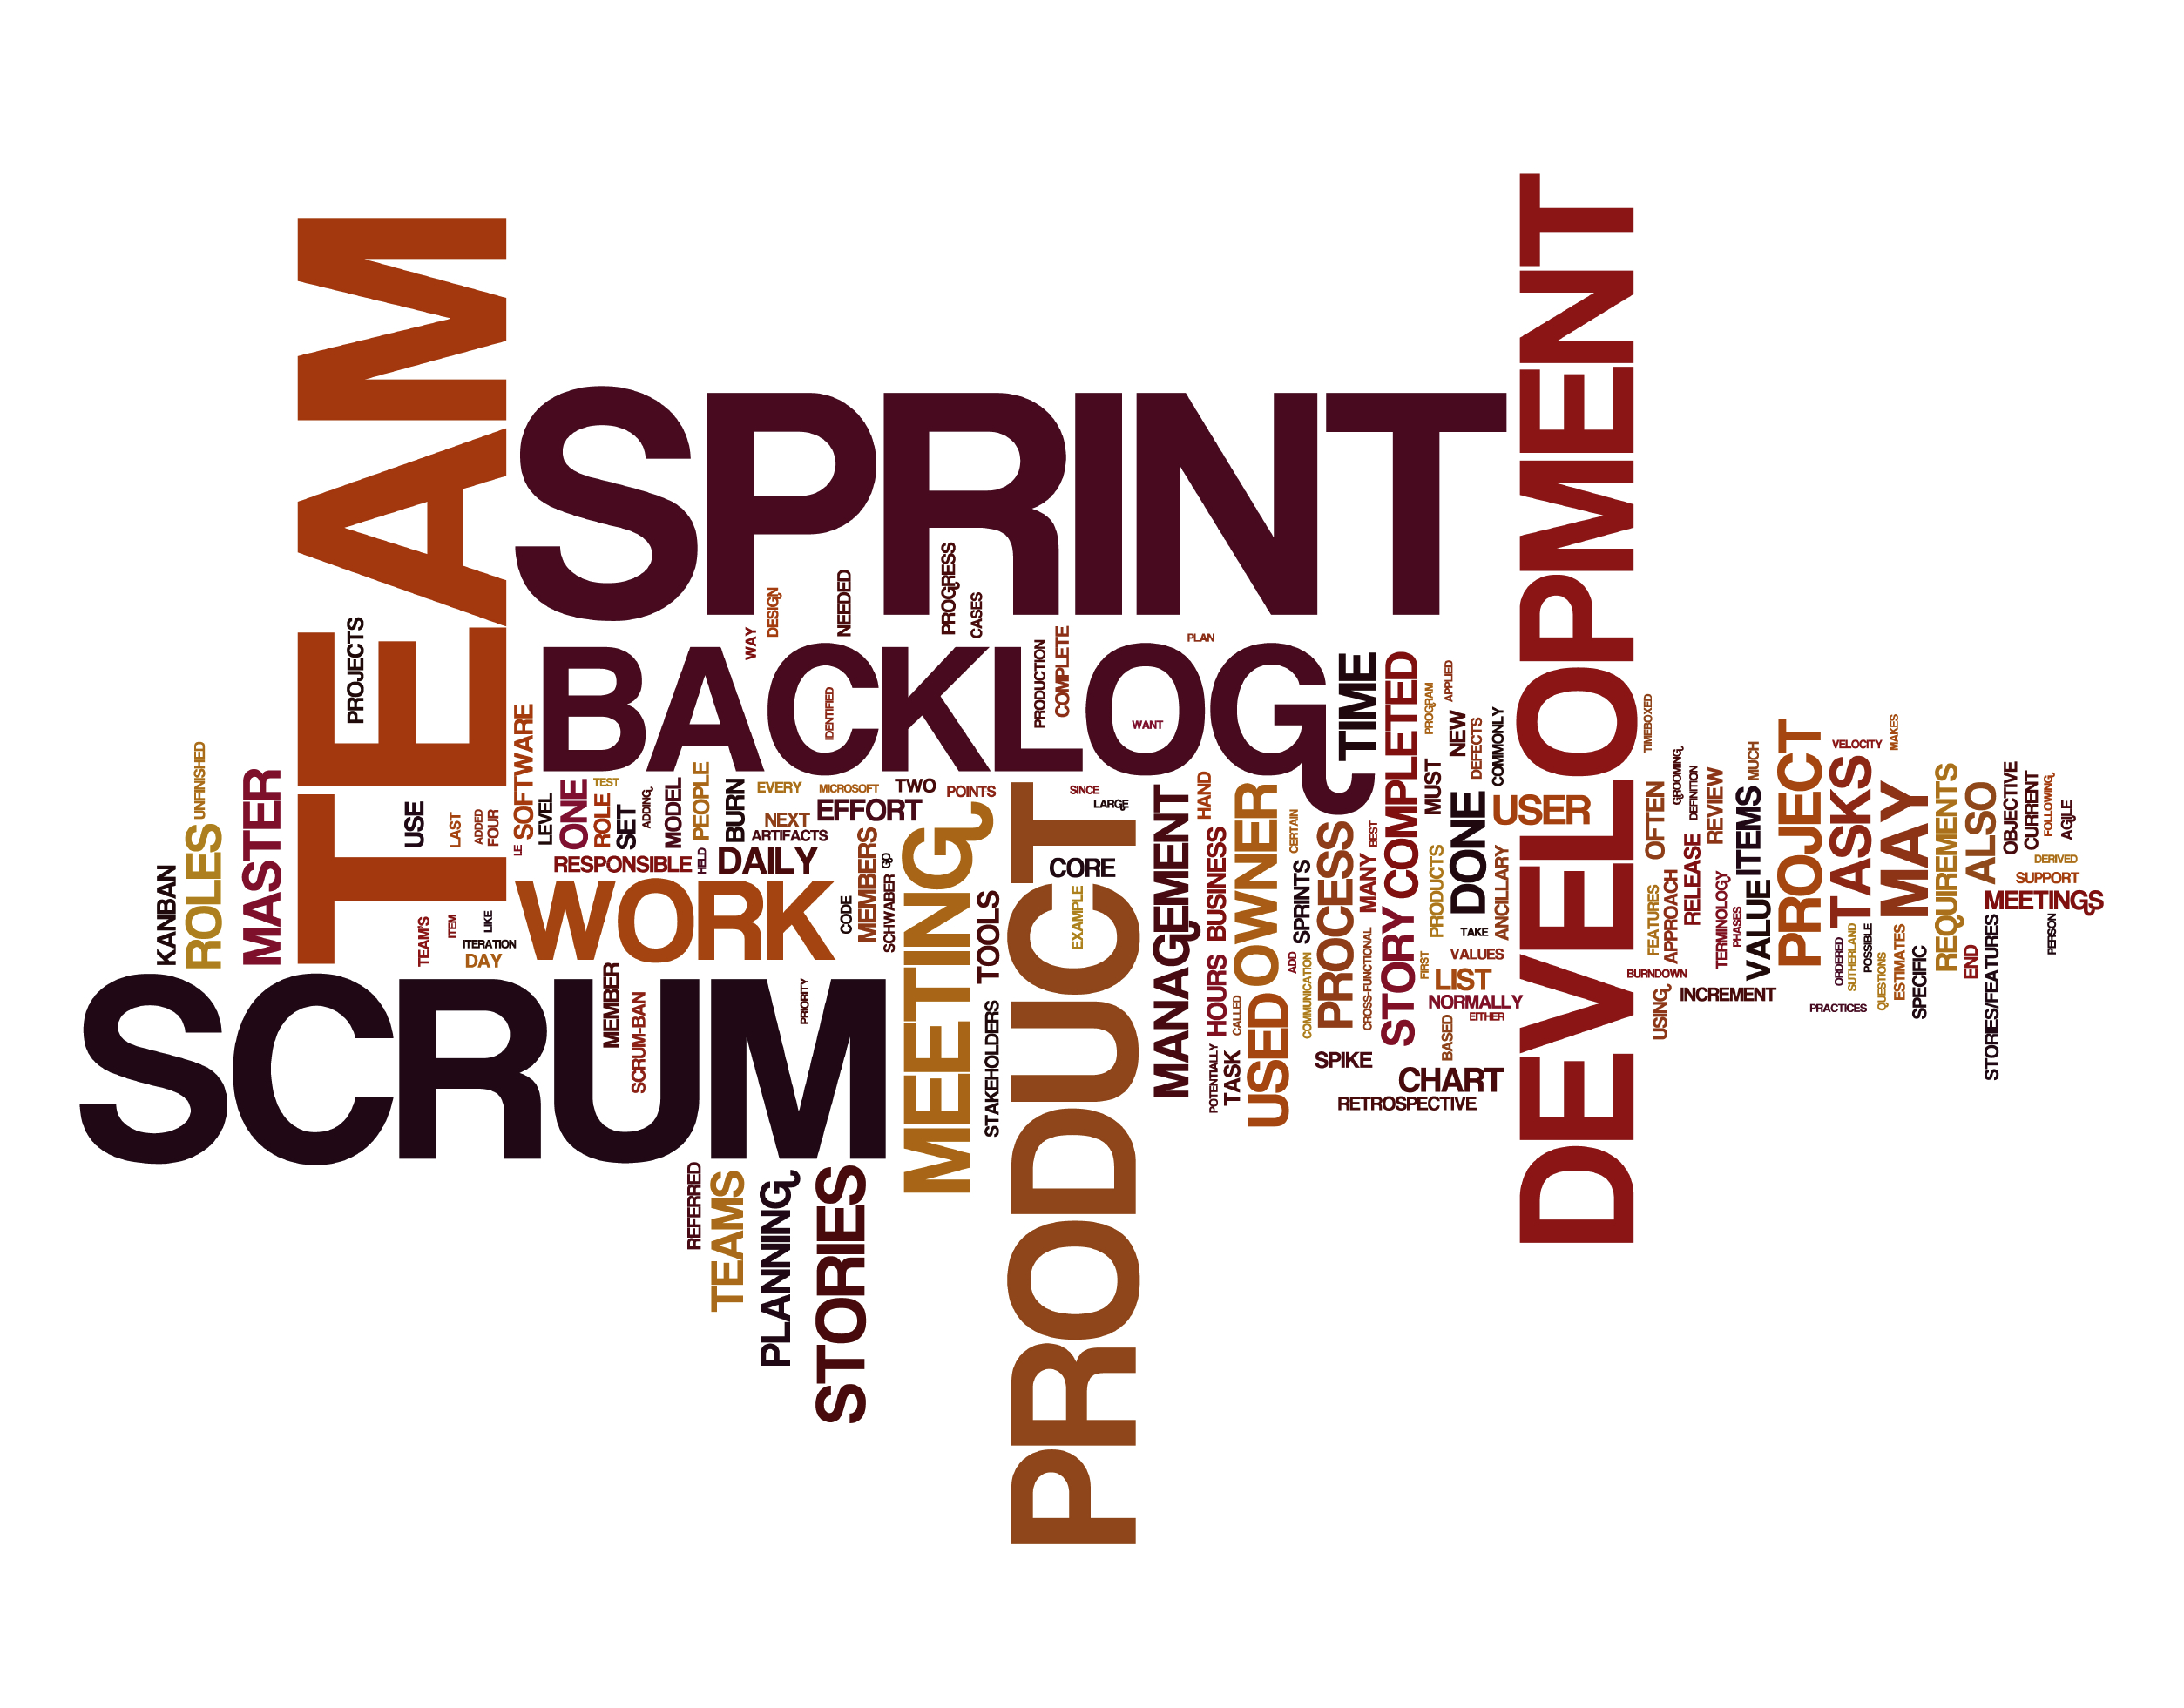 Agile Development Word Cloud